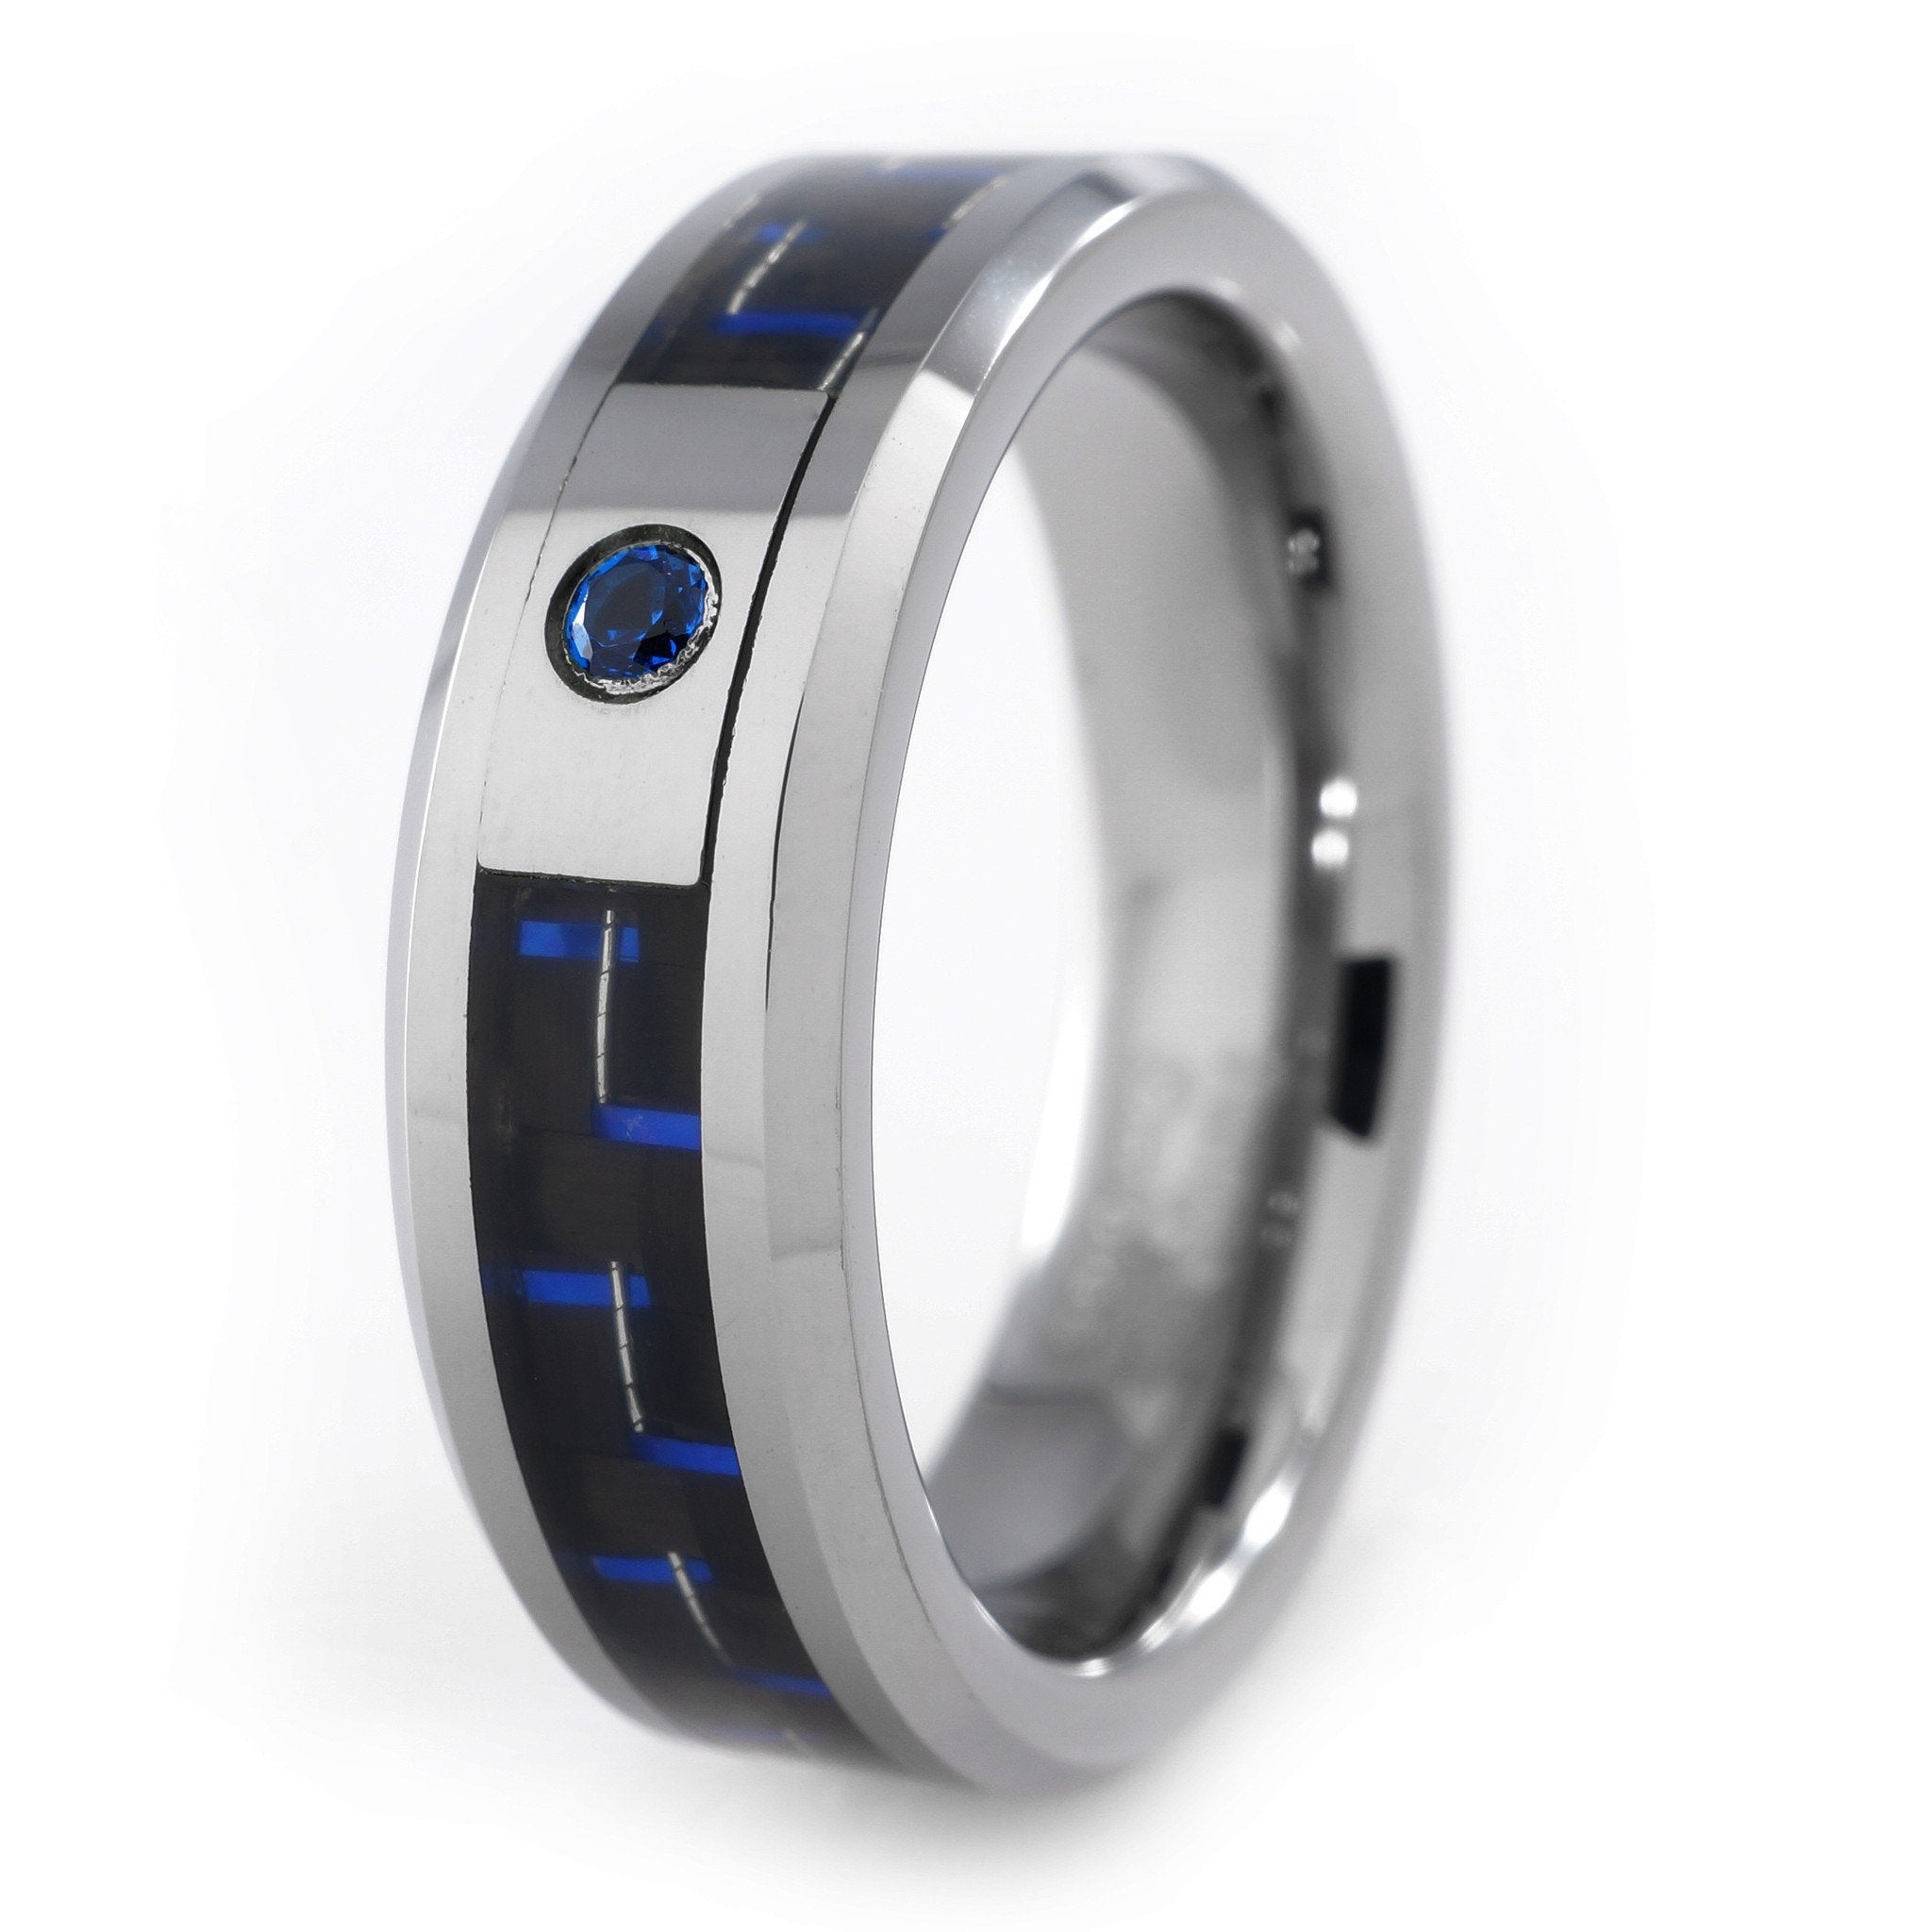 jewelry men s titanium overstock product rings carbon over fiber mens wedding free band on orders watches shipping